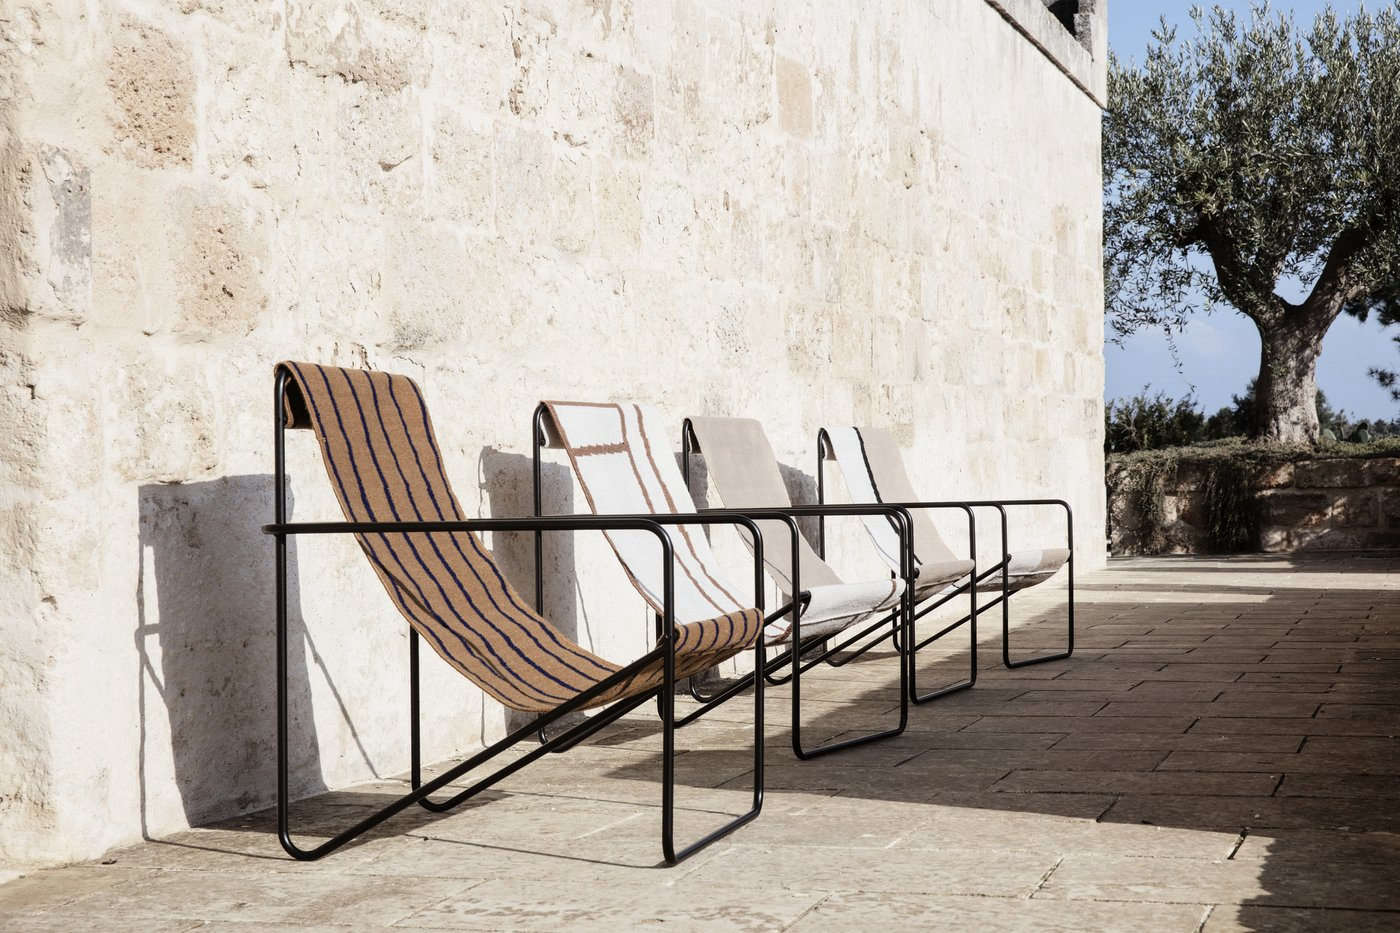 The chairs are available in a choice of covers, including stripes and solids.